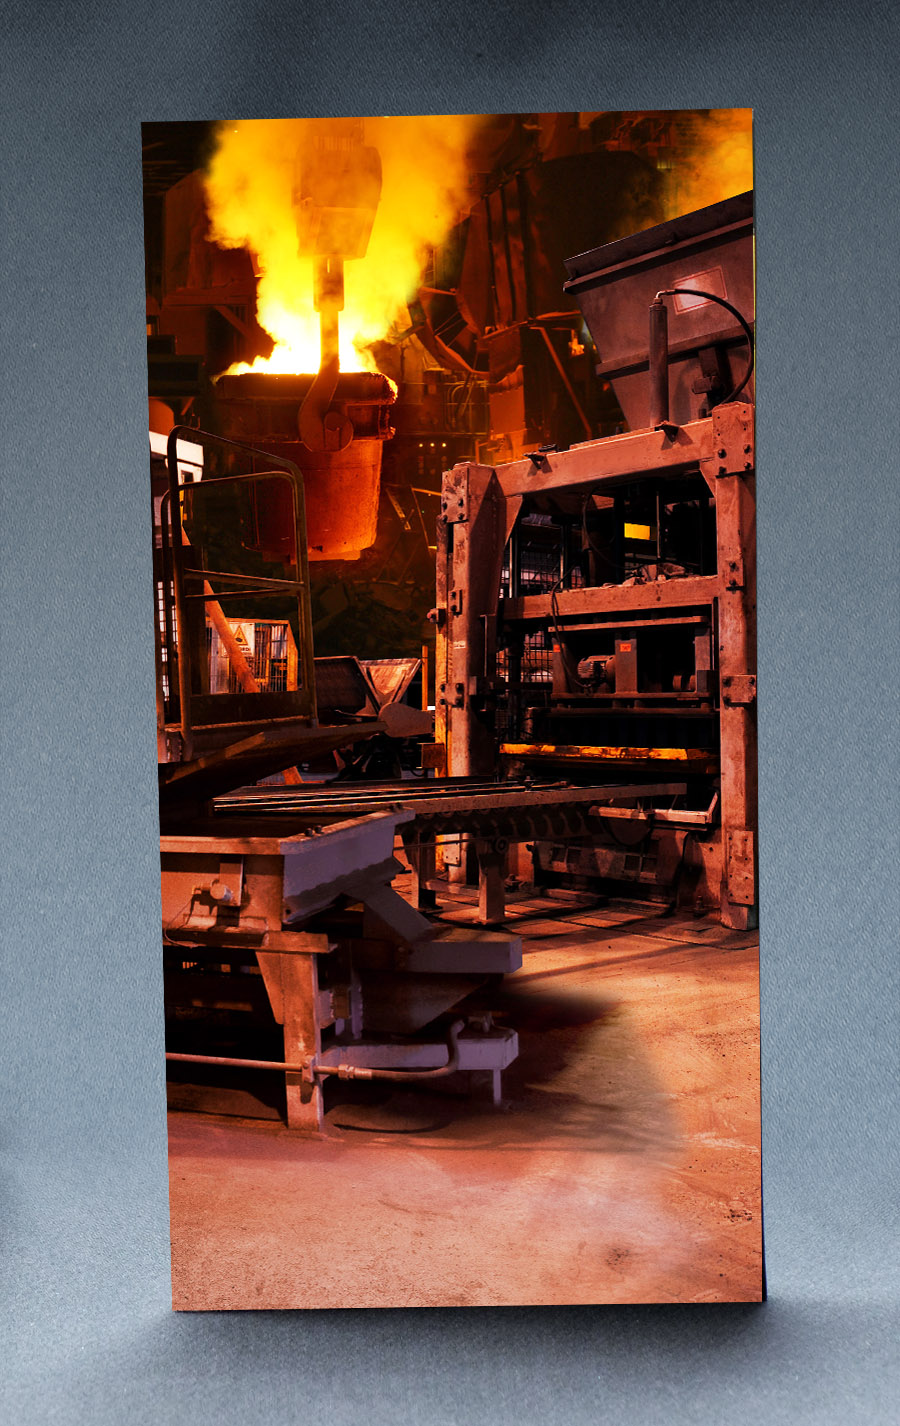 Steel Mill 1:6 Scale Striking Backdrop